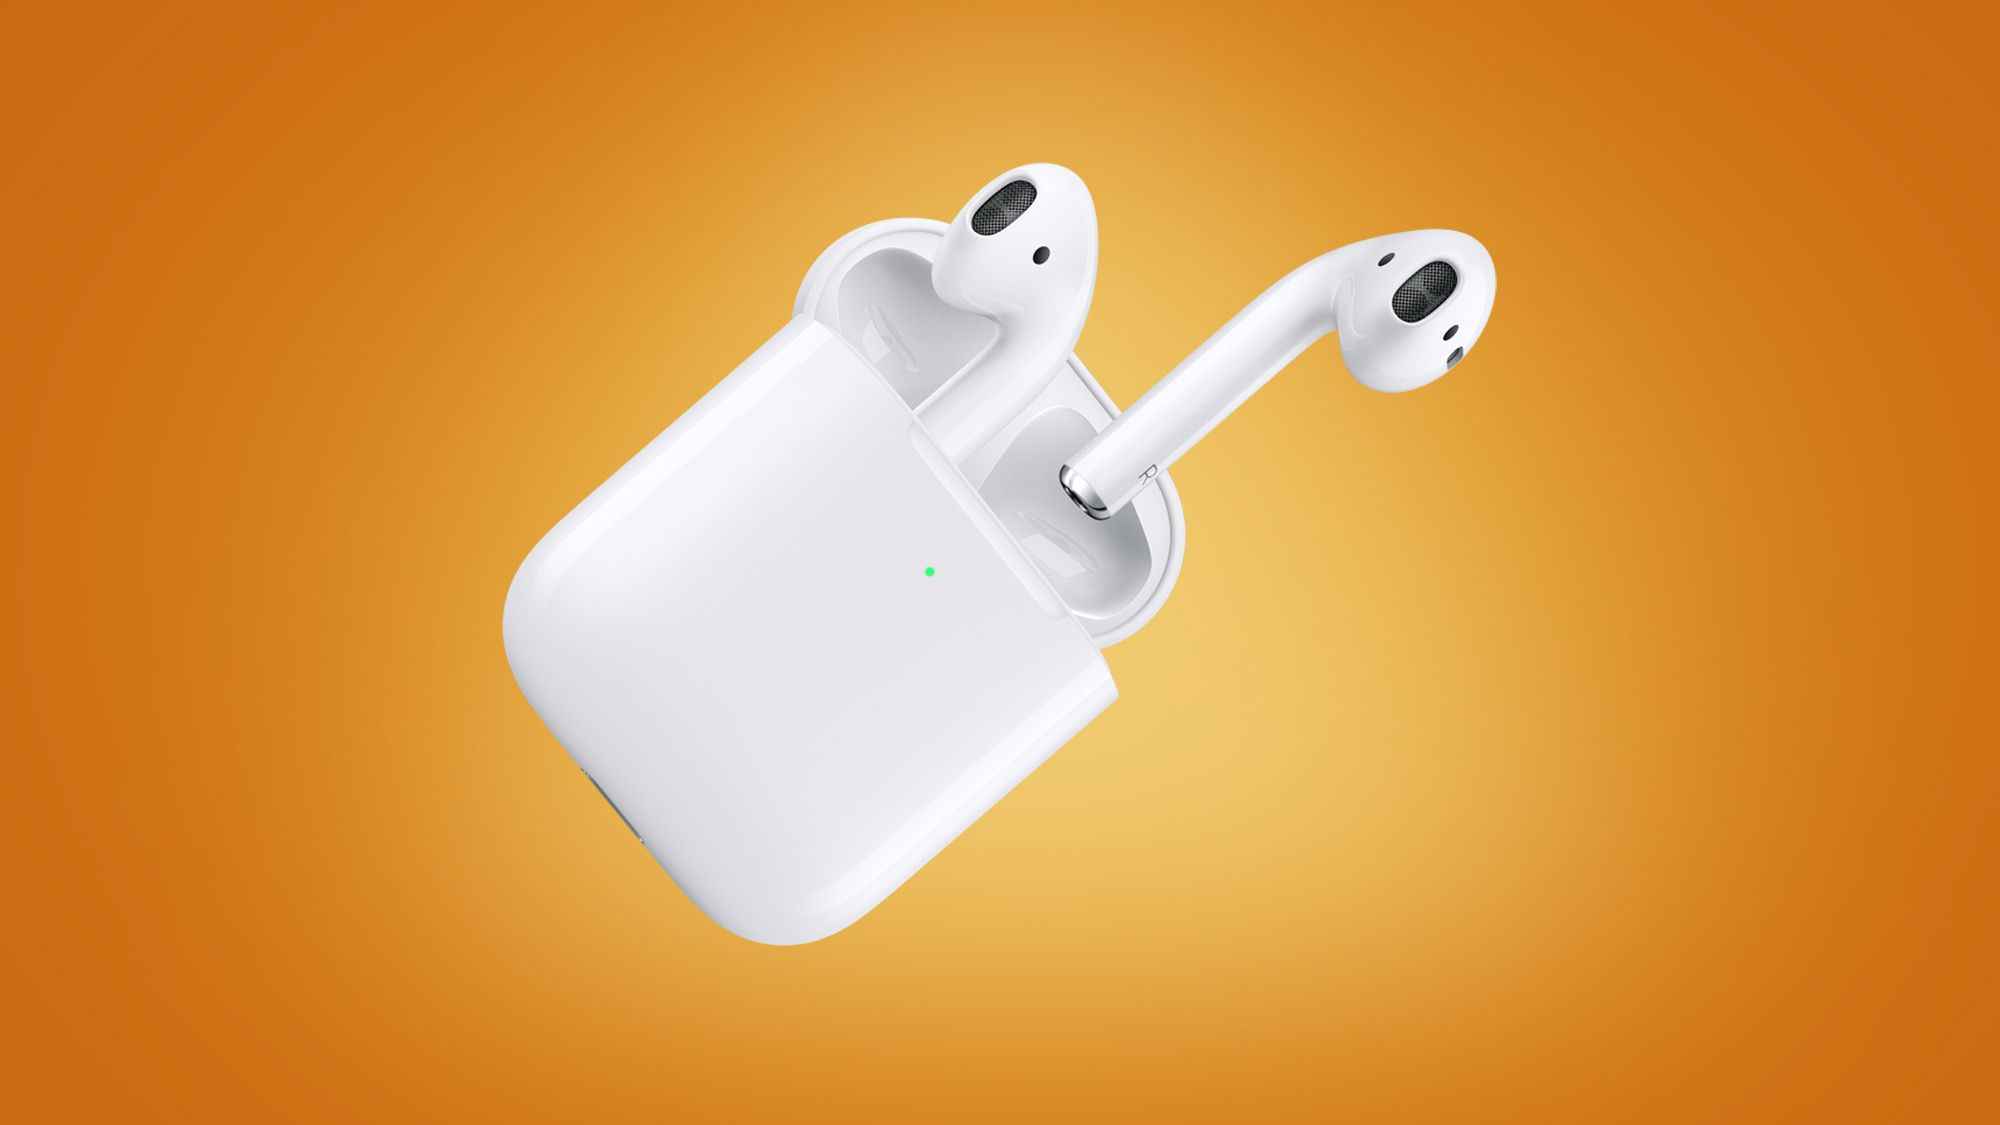 The Cheapest Airpod Prices Sales And Deals In November 2020 Black Friday Apple Apple Watch Deals